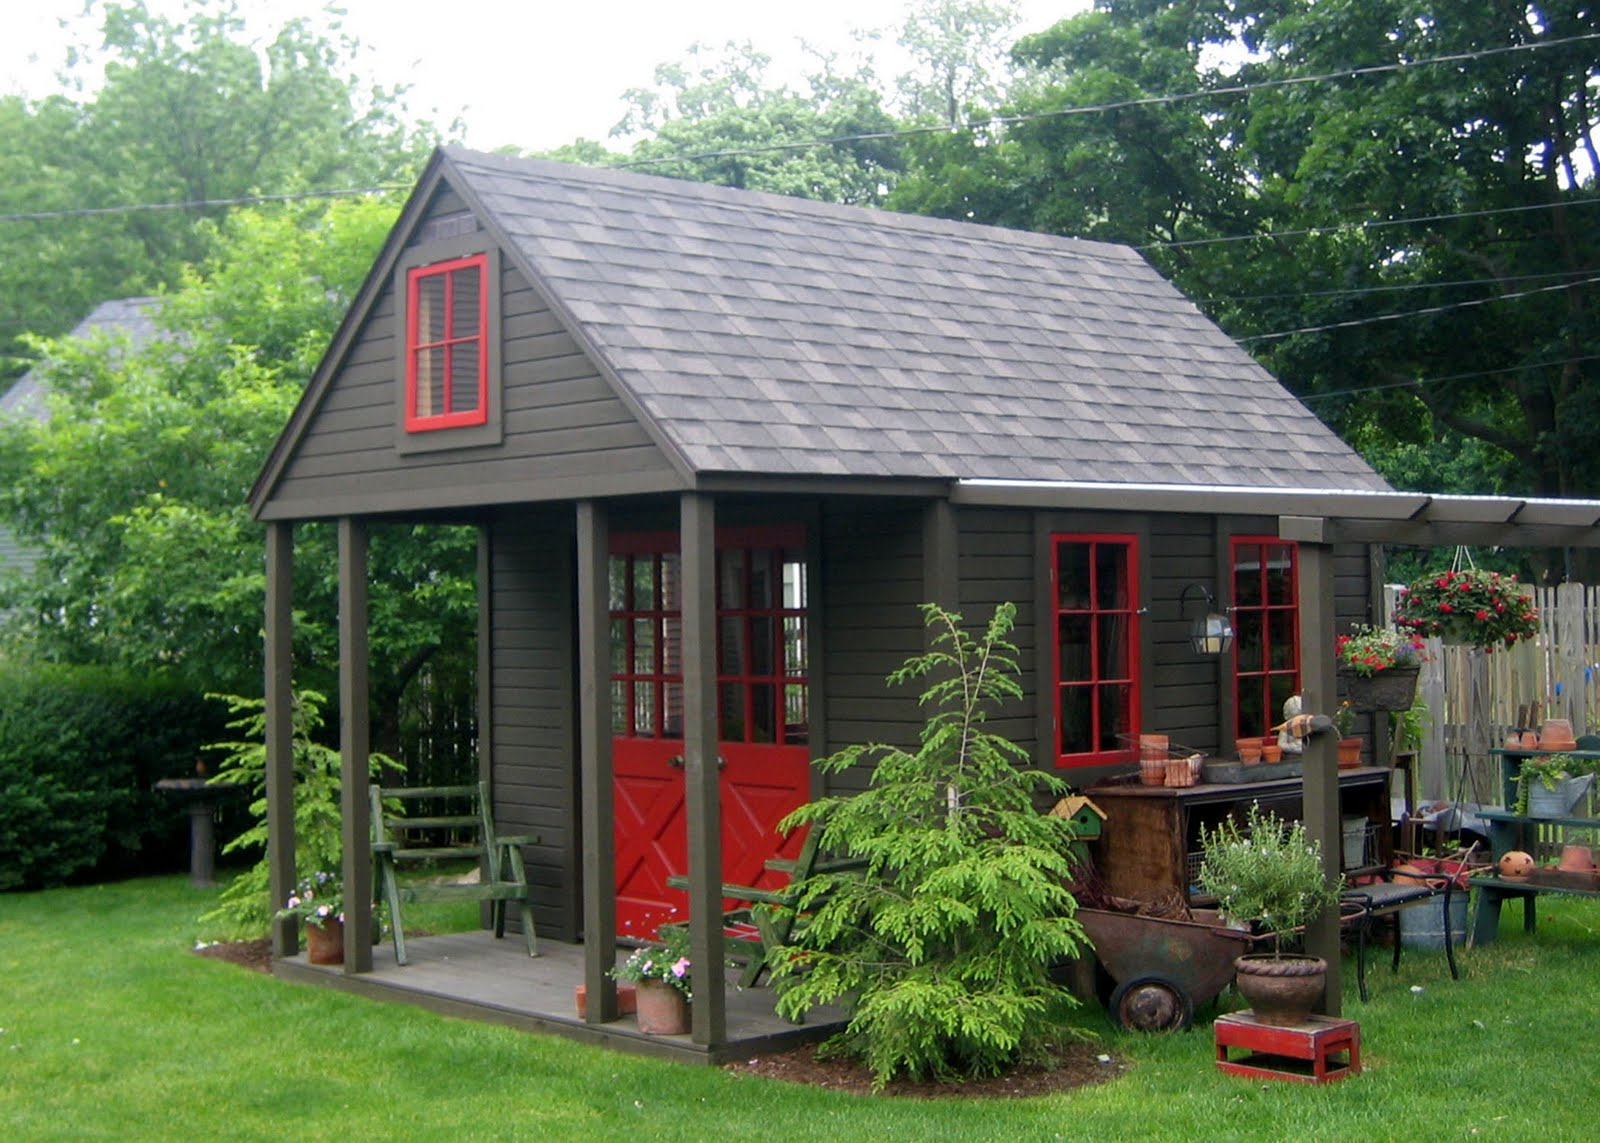 Nappanee home and garden club garden sheds porches for Garden building design ideas